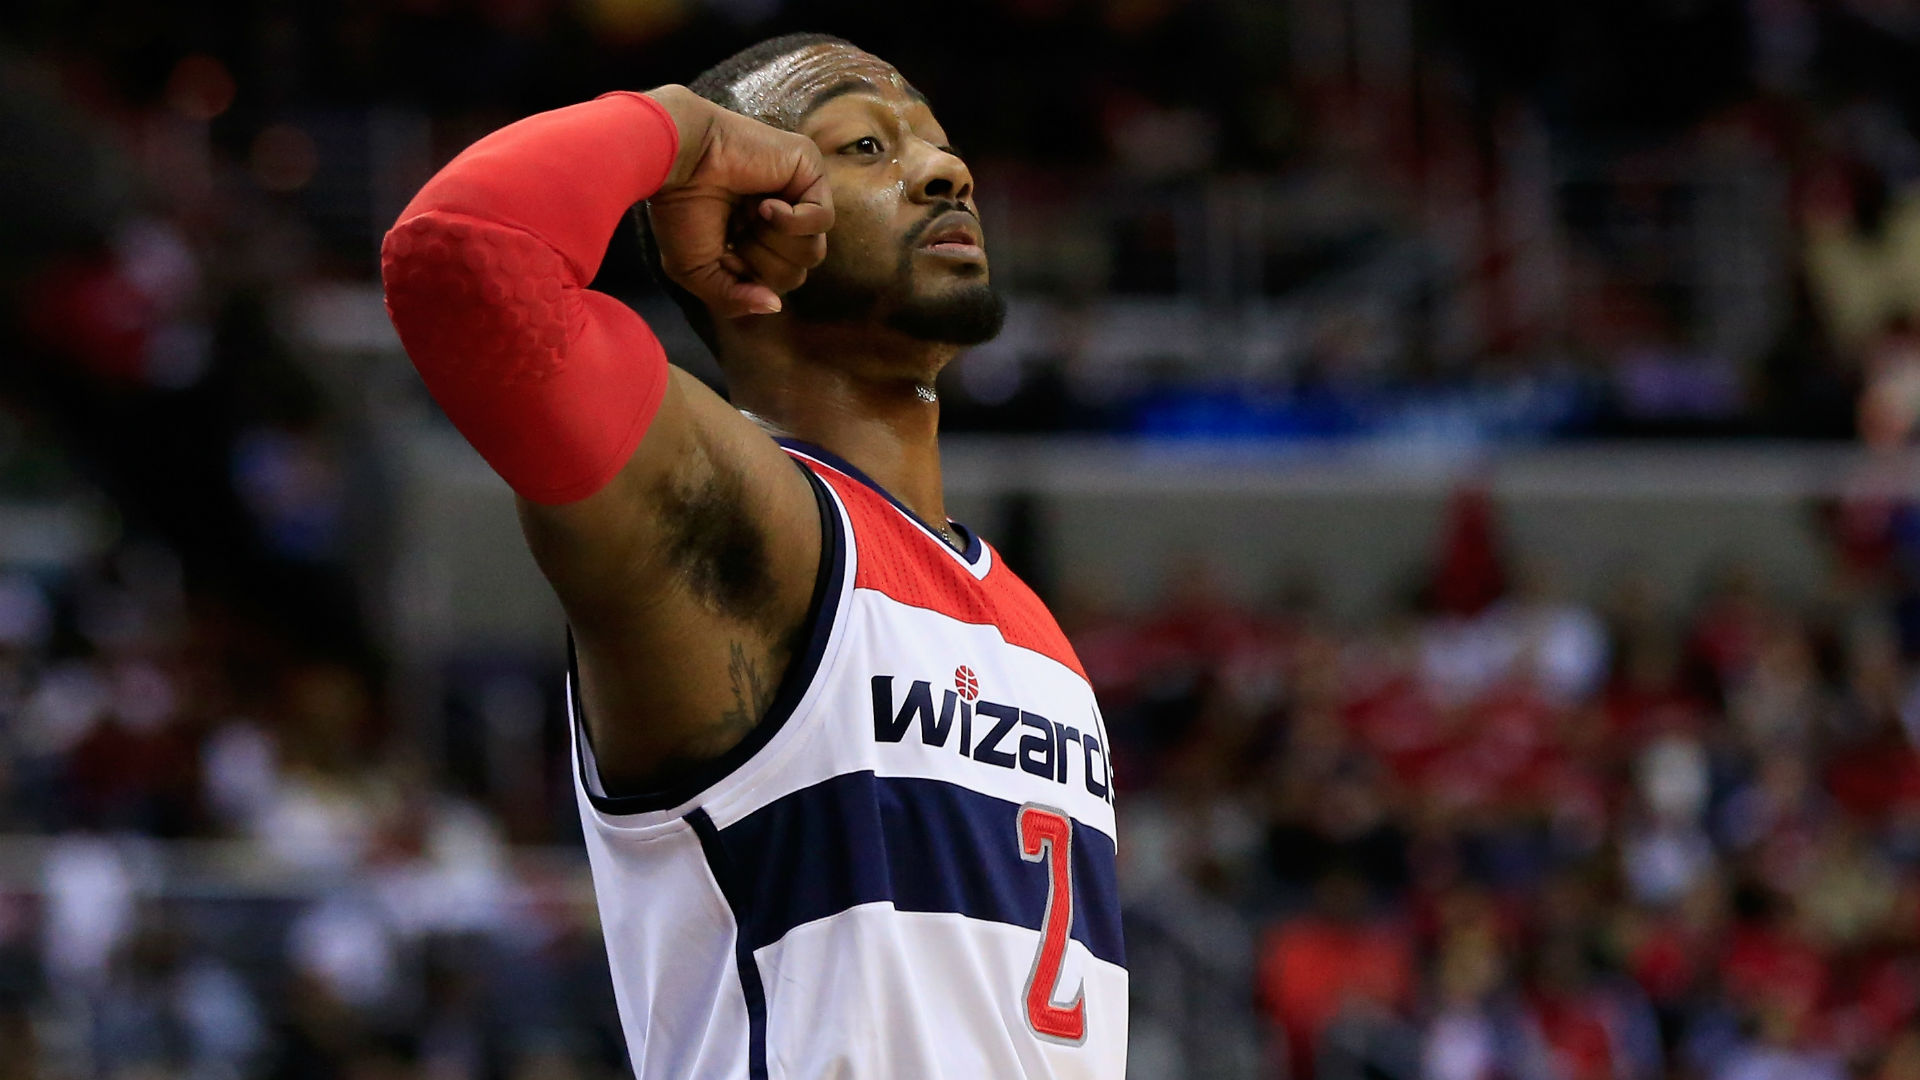 NBA playoffs roundup: Wizards, Cavs sweep into second round